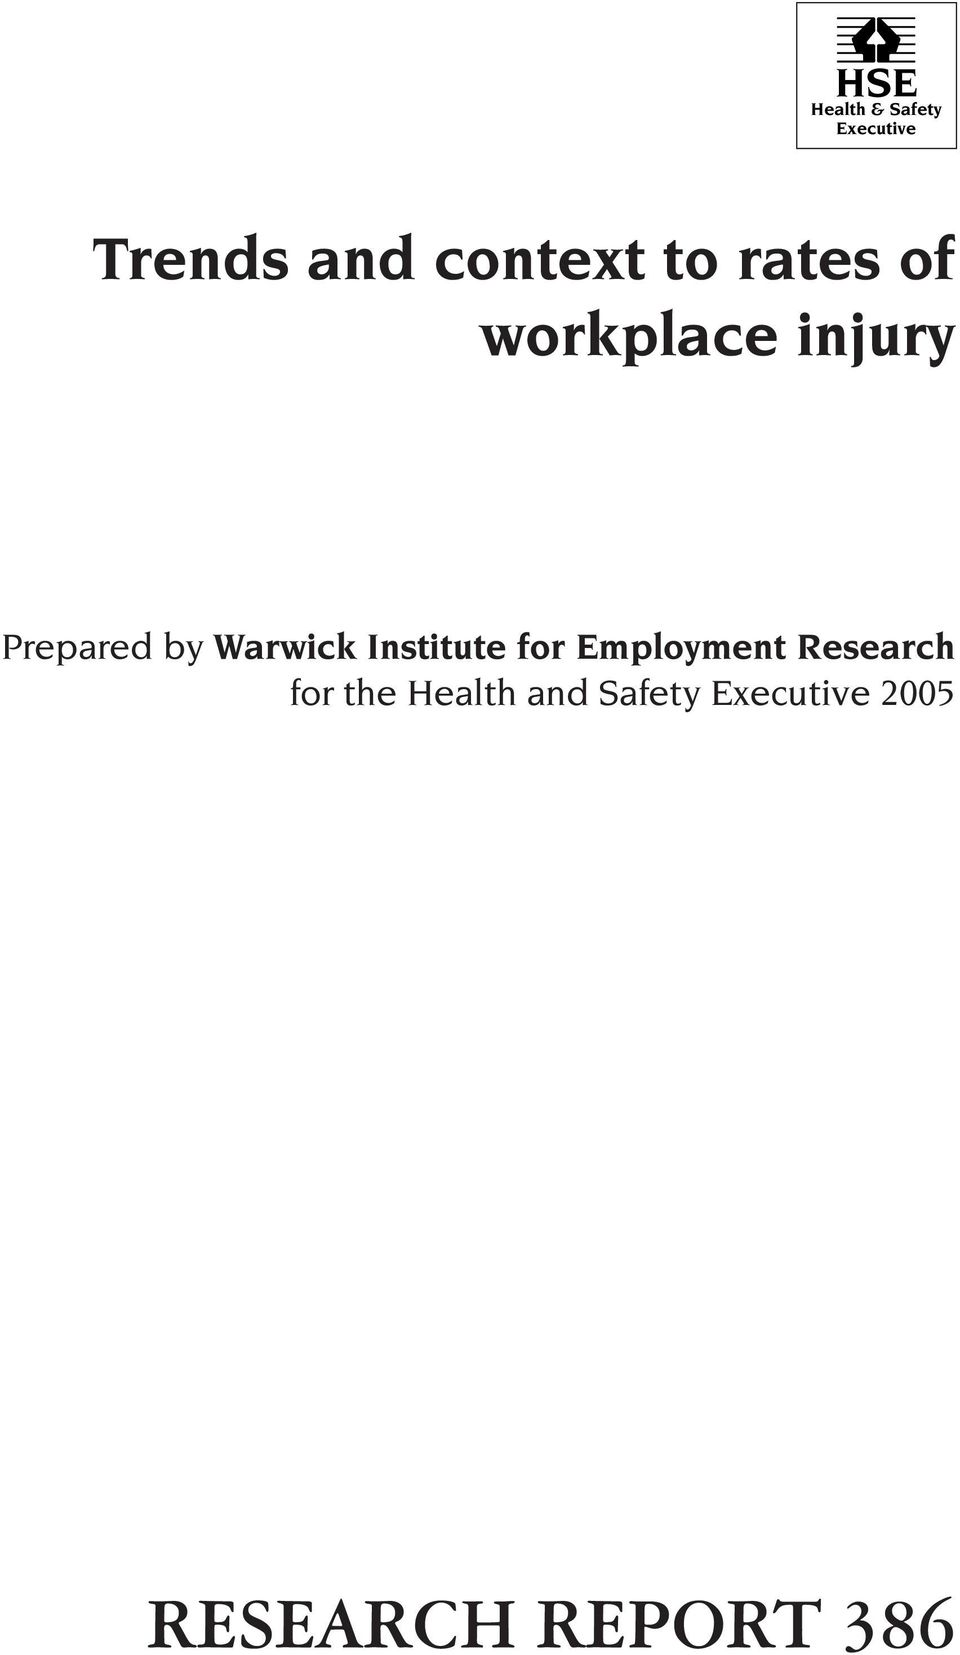 by Warwick Institute for Employment Research